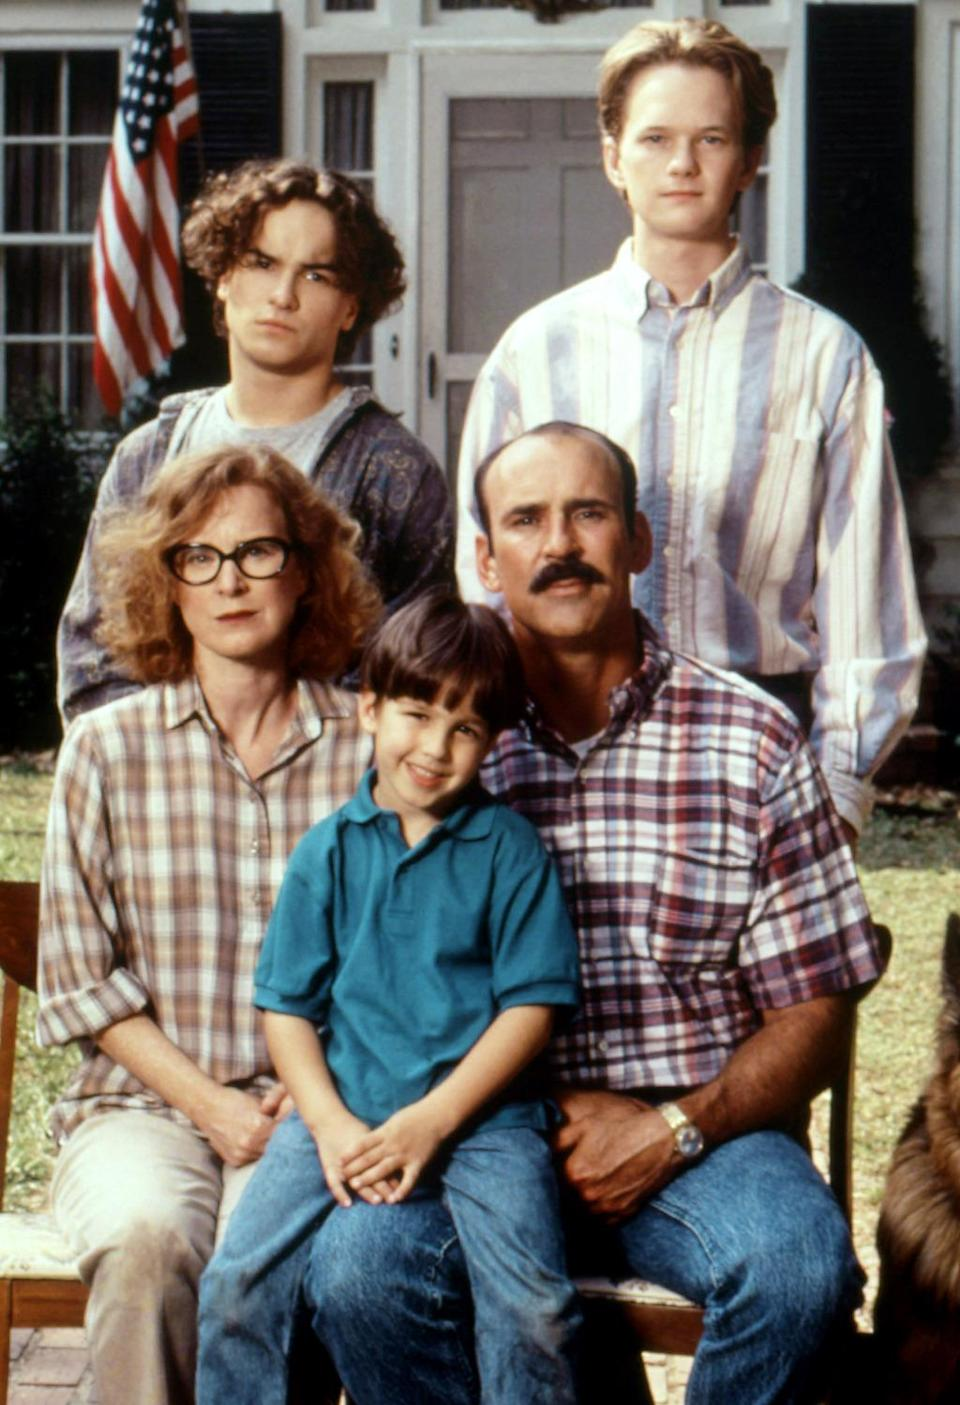 <p><b>Aired:</b> November 21, 1993 on NBC<br><b>Stars:</b> Johnny Galecki and Neil Patrick Harris<br><br><b>Ripped from the headlines about:</b> A pair of adopted brothers who become suspects when their adoptive parents are murdered. Did one of the sons — played by the future CBS Monday night sitcom stars — really do it? Orange jumpsuit up… it was NPH's character, Brian, who was traumatized by his birth mother's abandonment and the way he was treated in foster care.<br><br><i>(Credit: Everett Collection)</i> </p>